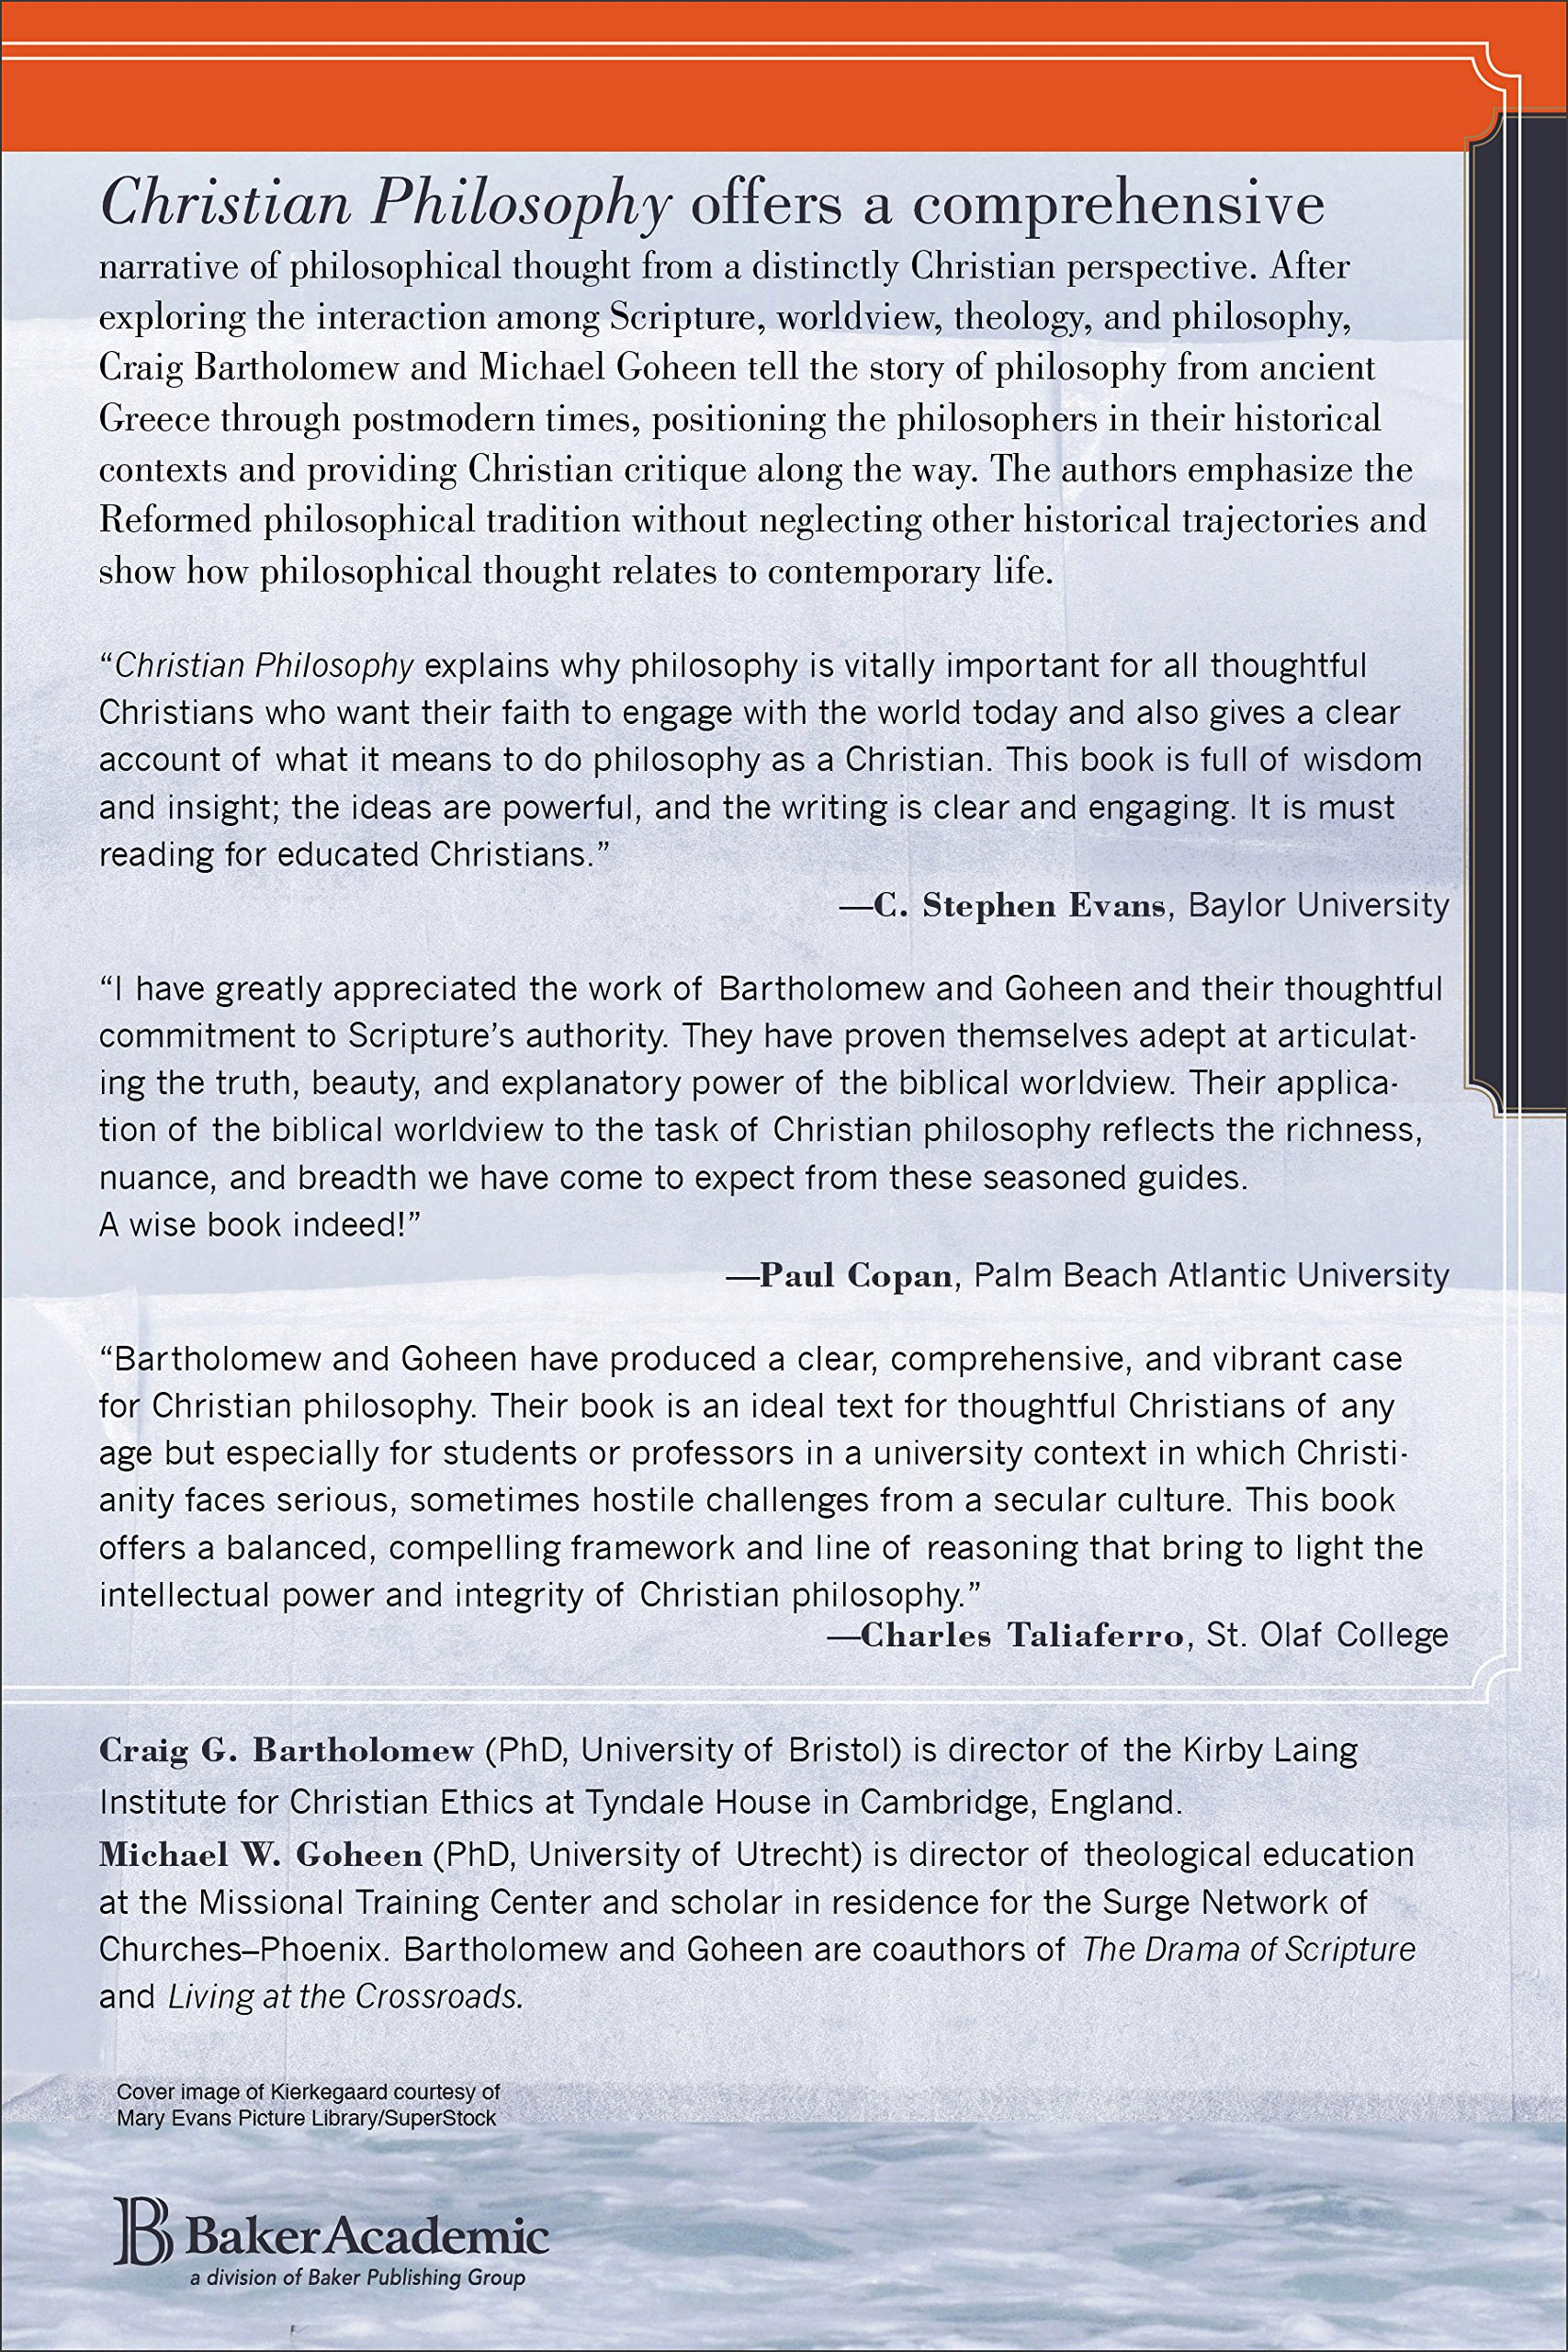 Christian philosophy a systematic and narrative introduction christian philosophy a systematic and narrative introduction craig g bartholomew michael w goheen 9780801039119 amazon books fandeluxe Choice Image